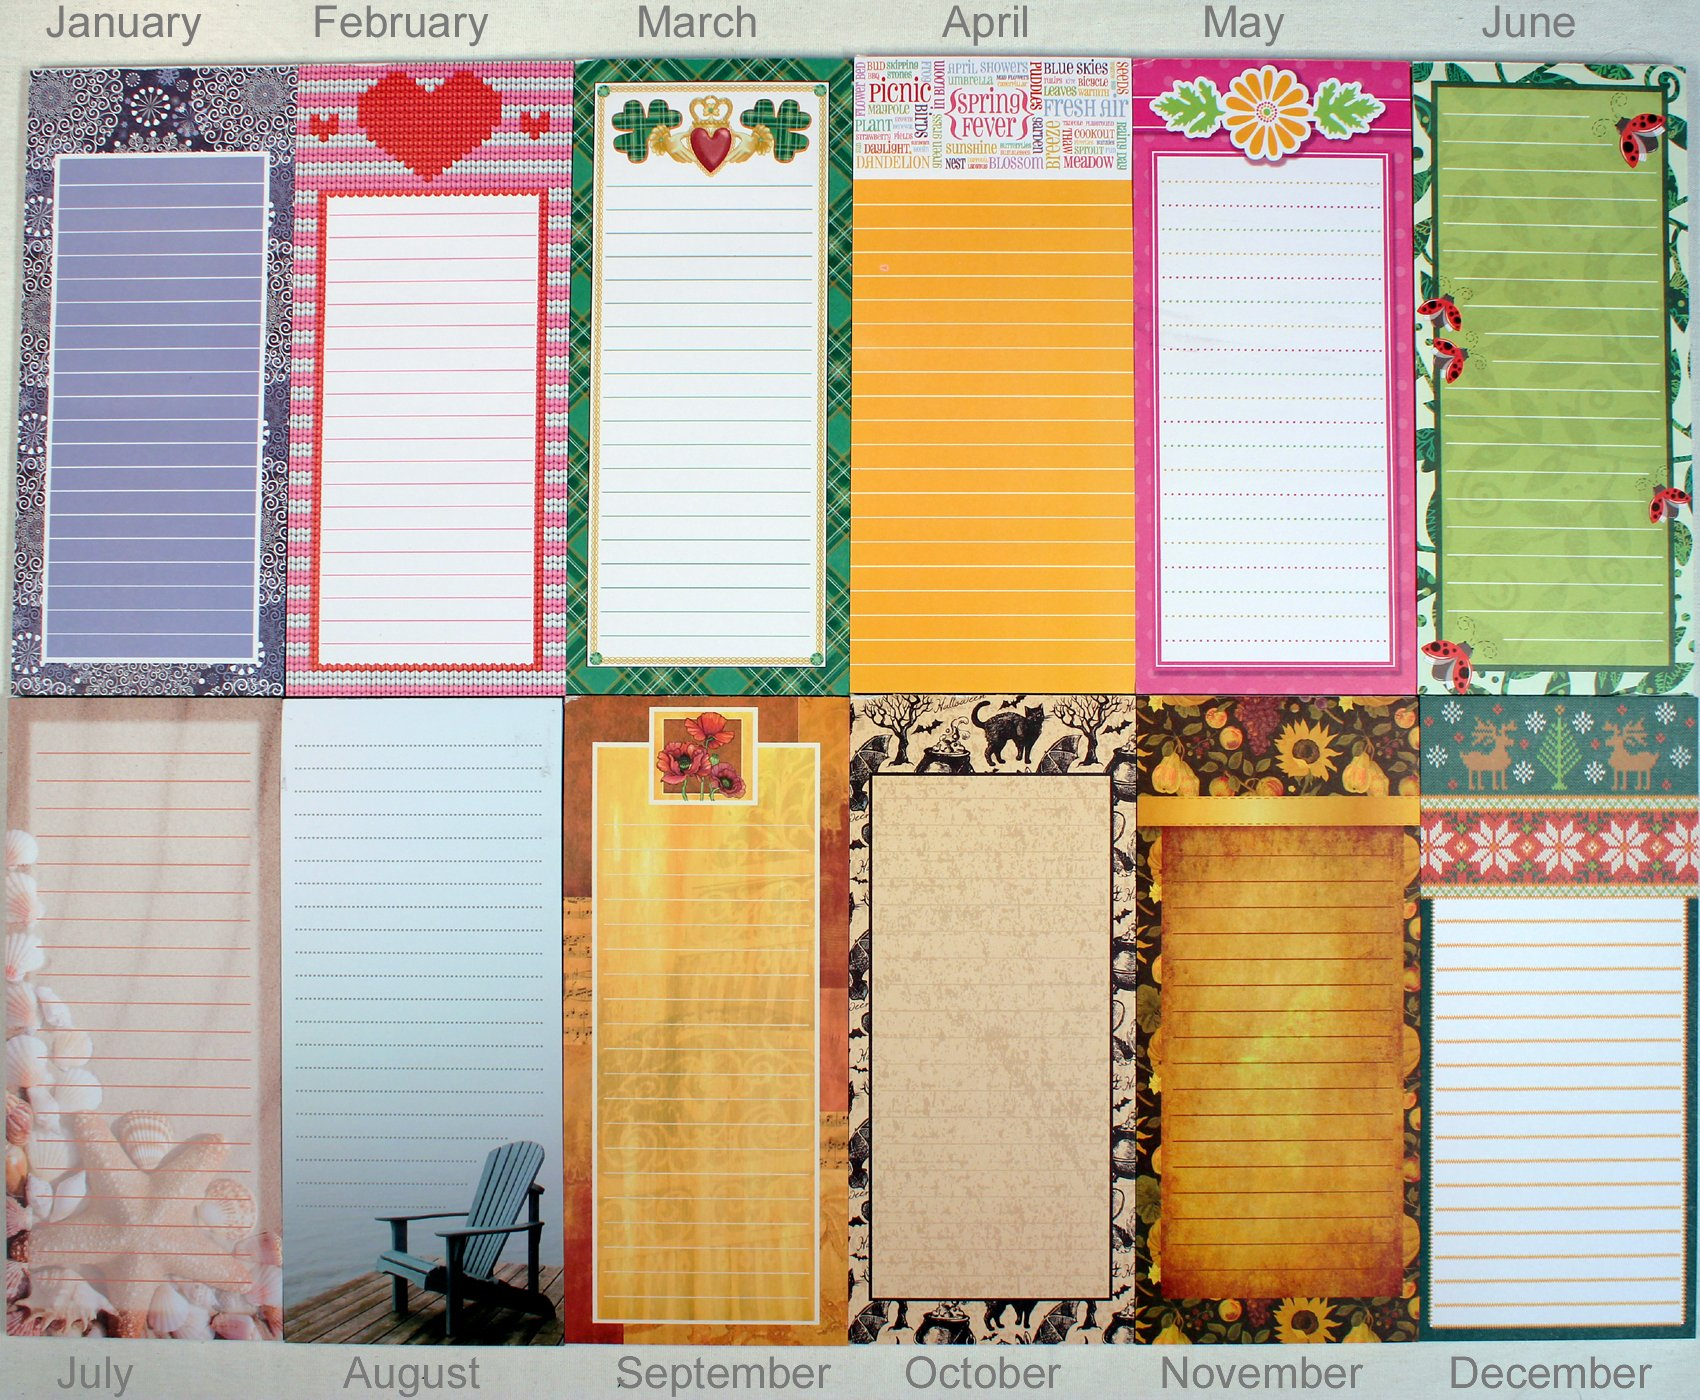 Creative Hobbies Magnetic Memo Note Pads, Seasonal Monthly Themes, Set of 12 Pads (1 Complete Year) by Creative Hobbies